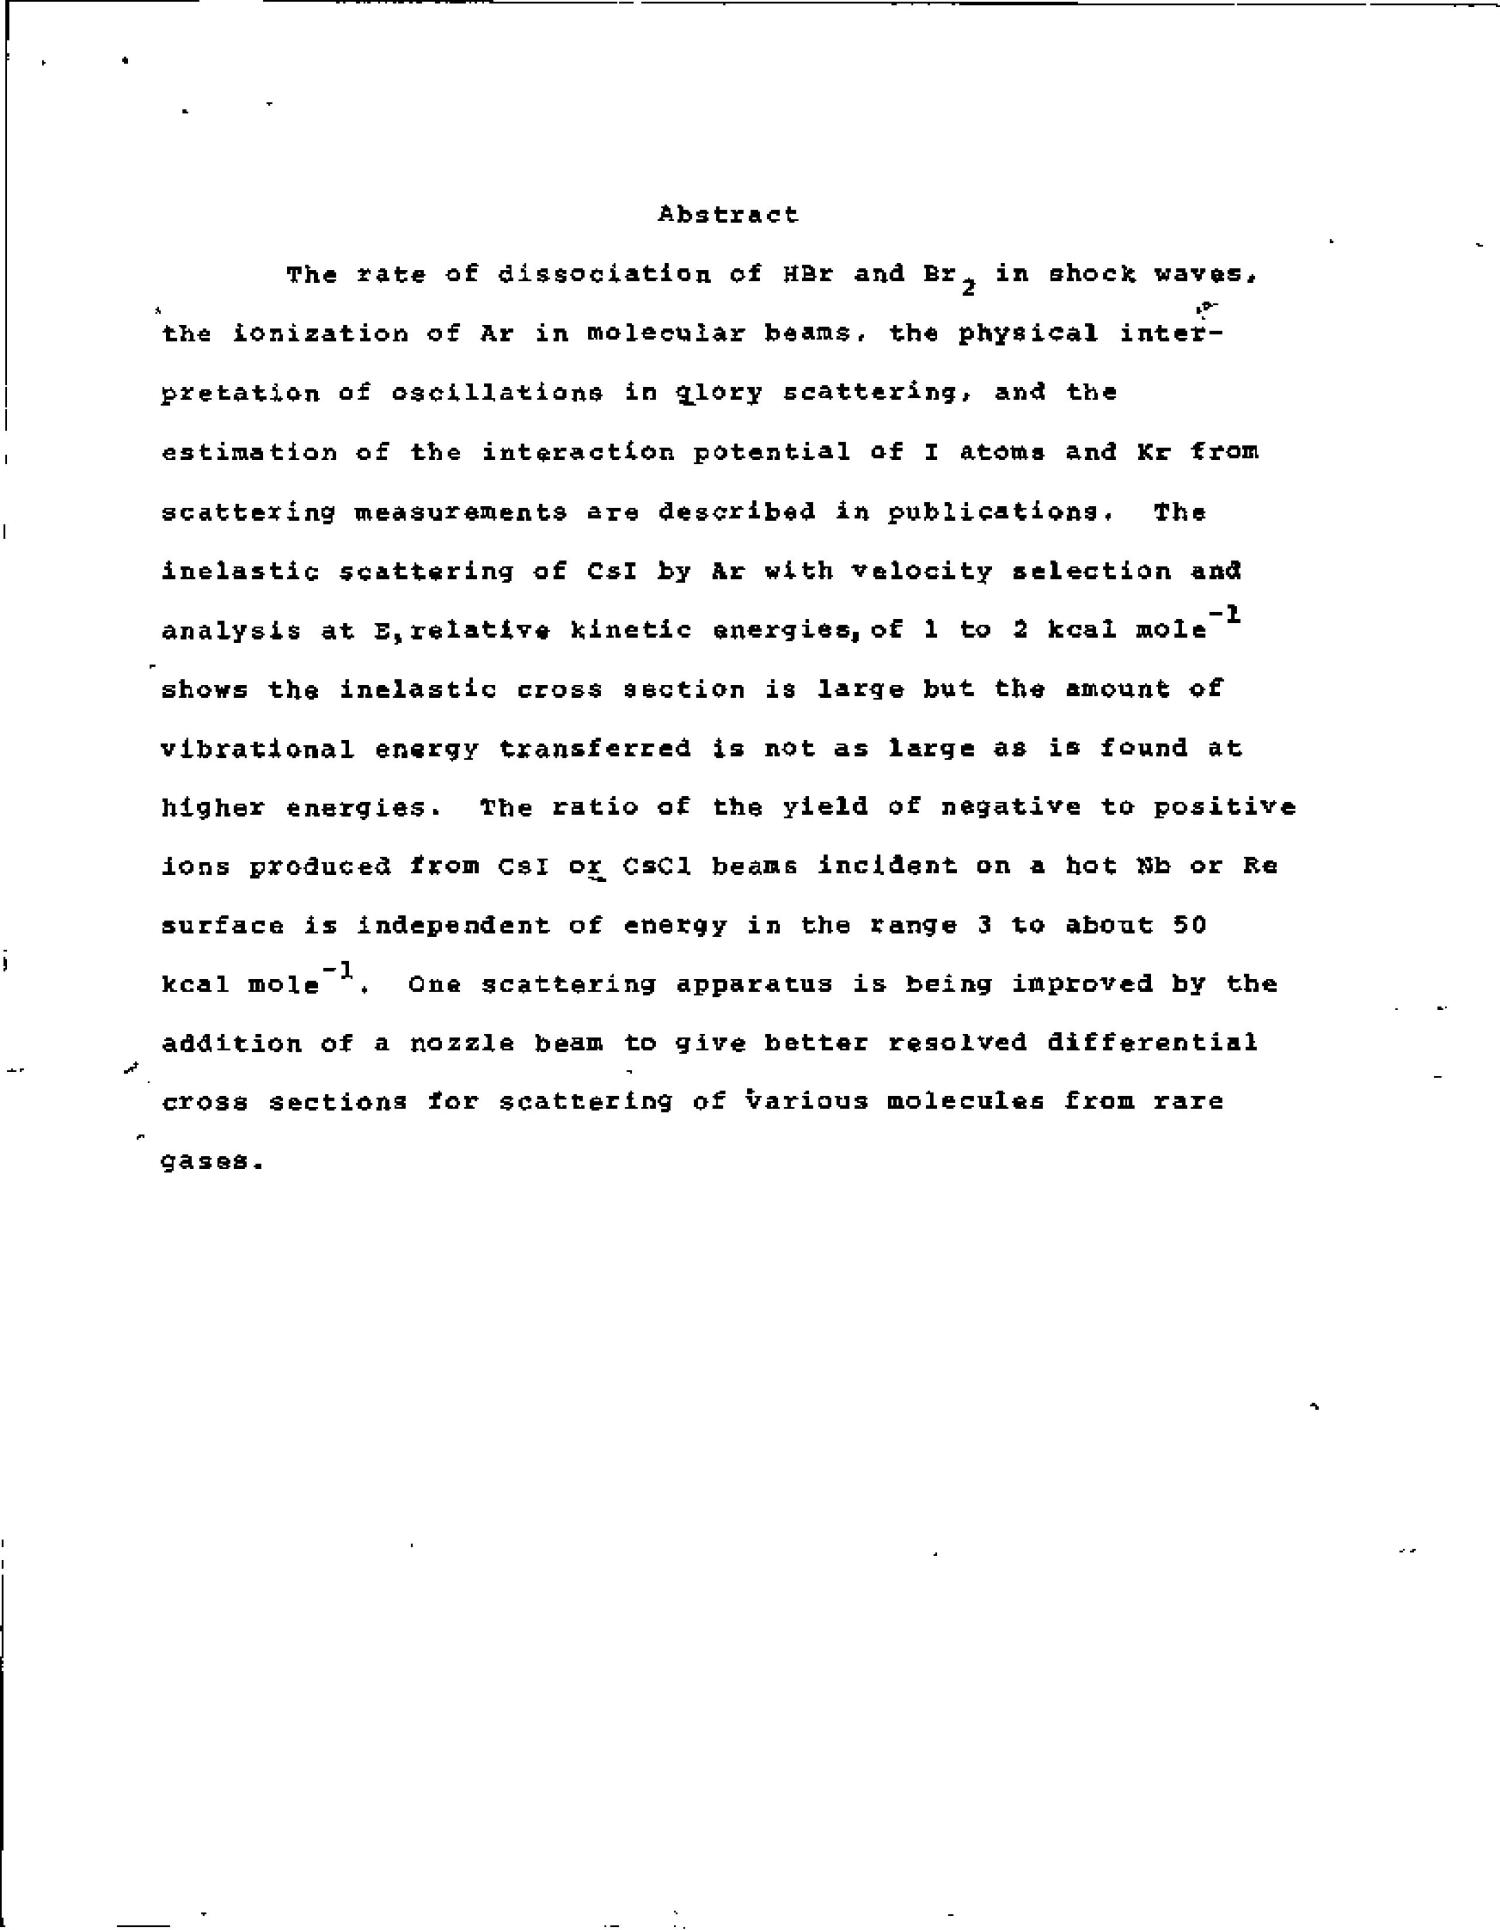 EXPERIMENTAL CHEMICAL KINETICS. A STUDY OF CHEMICAL REACTIONS BY MEANS OF MOLECULAR BEAM AND SHOCK WAVE TECHNIQUES. Progress Report, October 15, 1971--October 14, 1972.                                                                                                      [Sequence #]: 4 of 14